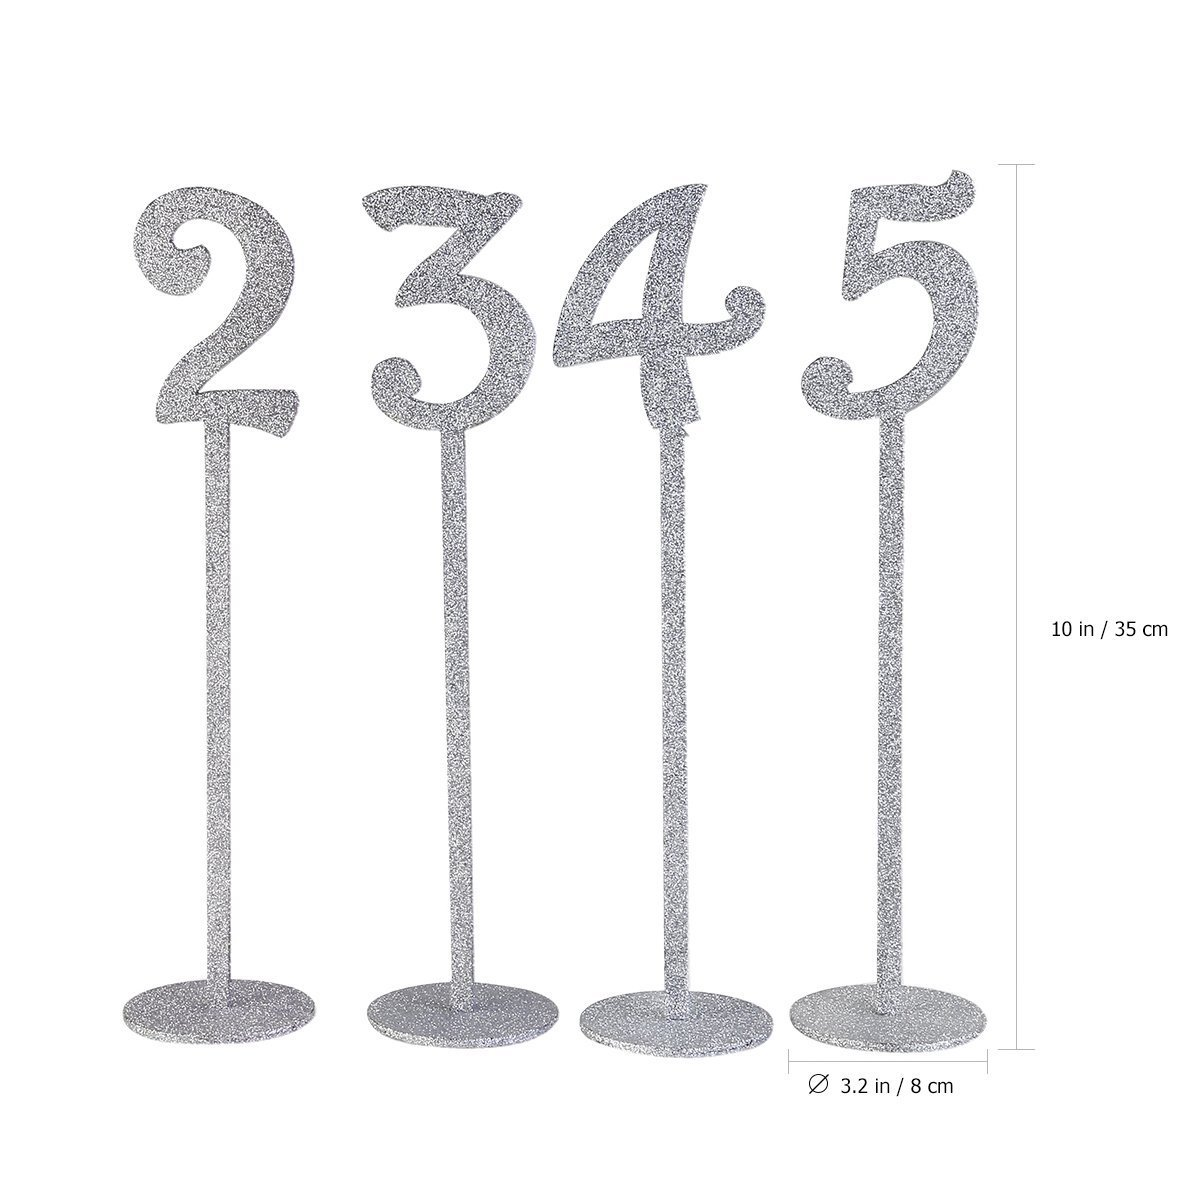 1 20 Silver Glitter Table Place Seating Numbers Holders Elegant Wedding Bridal Shower Birthday Party Table Decoration Supplies in Party DIY Decorations from Home Garden